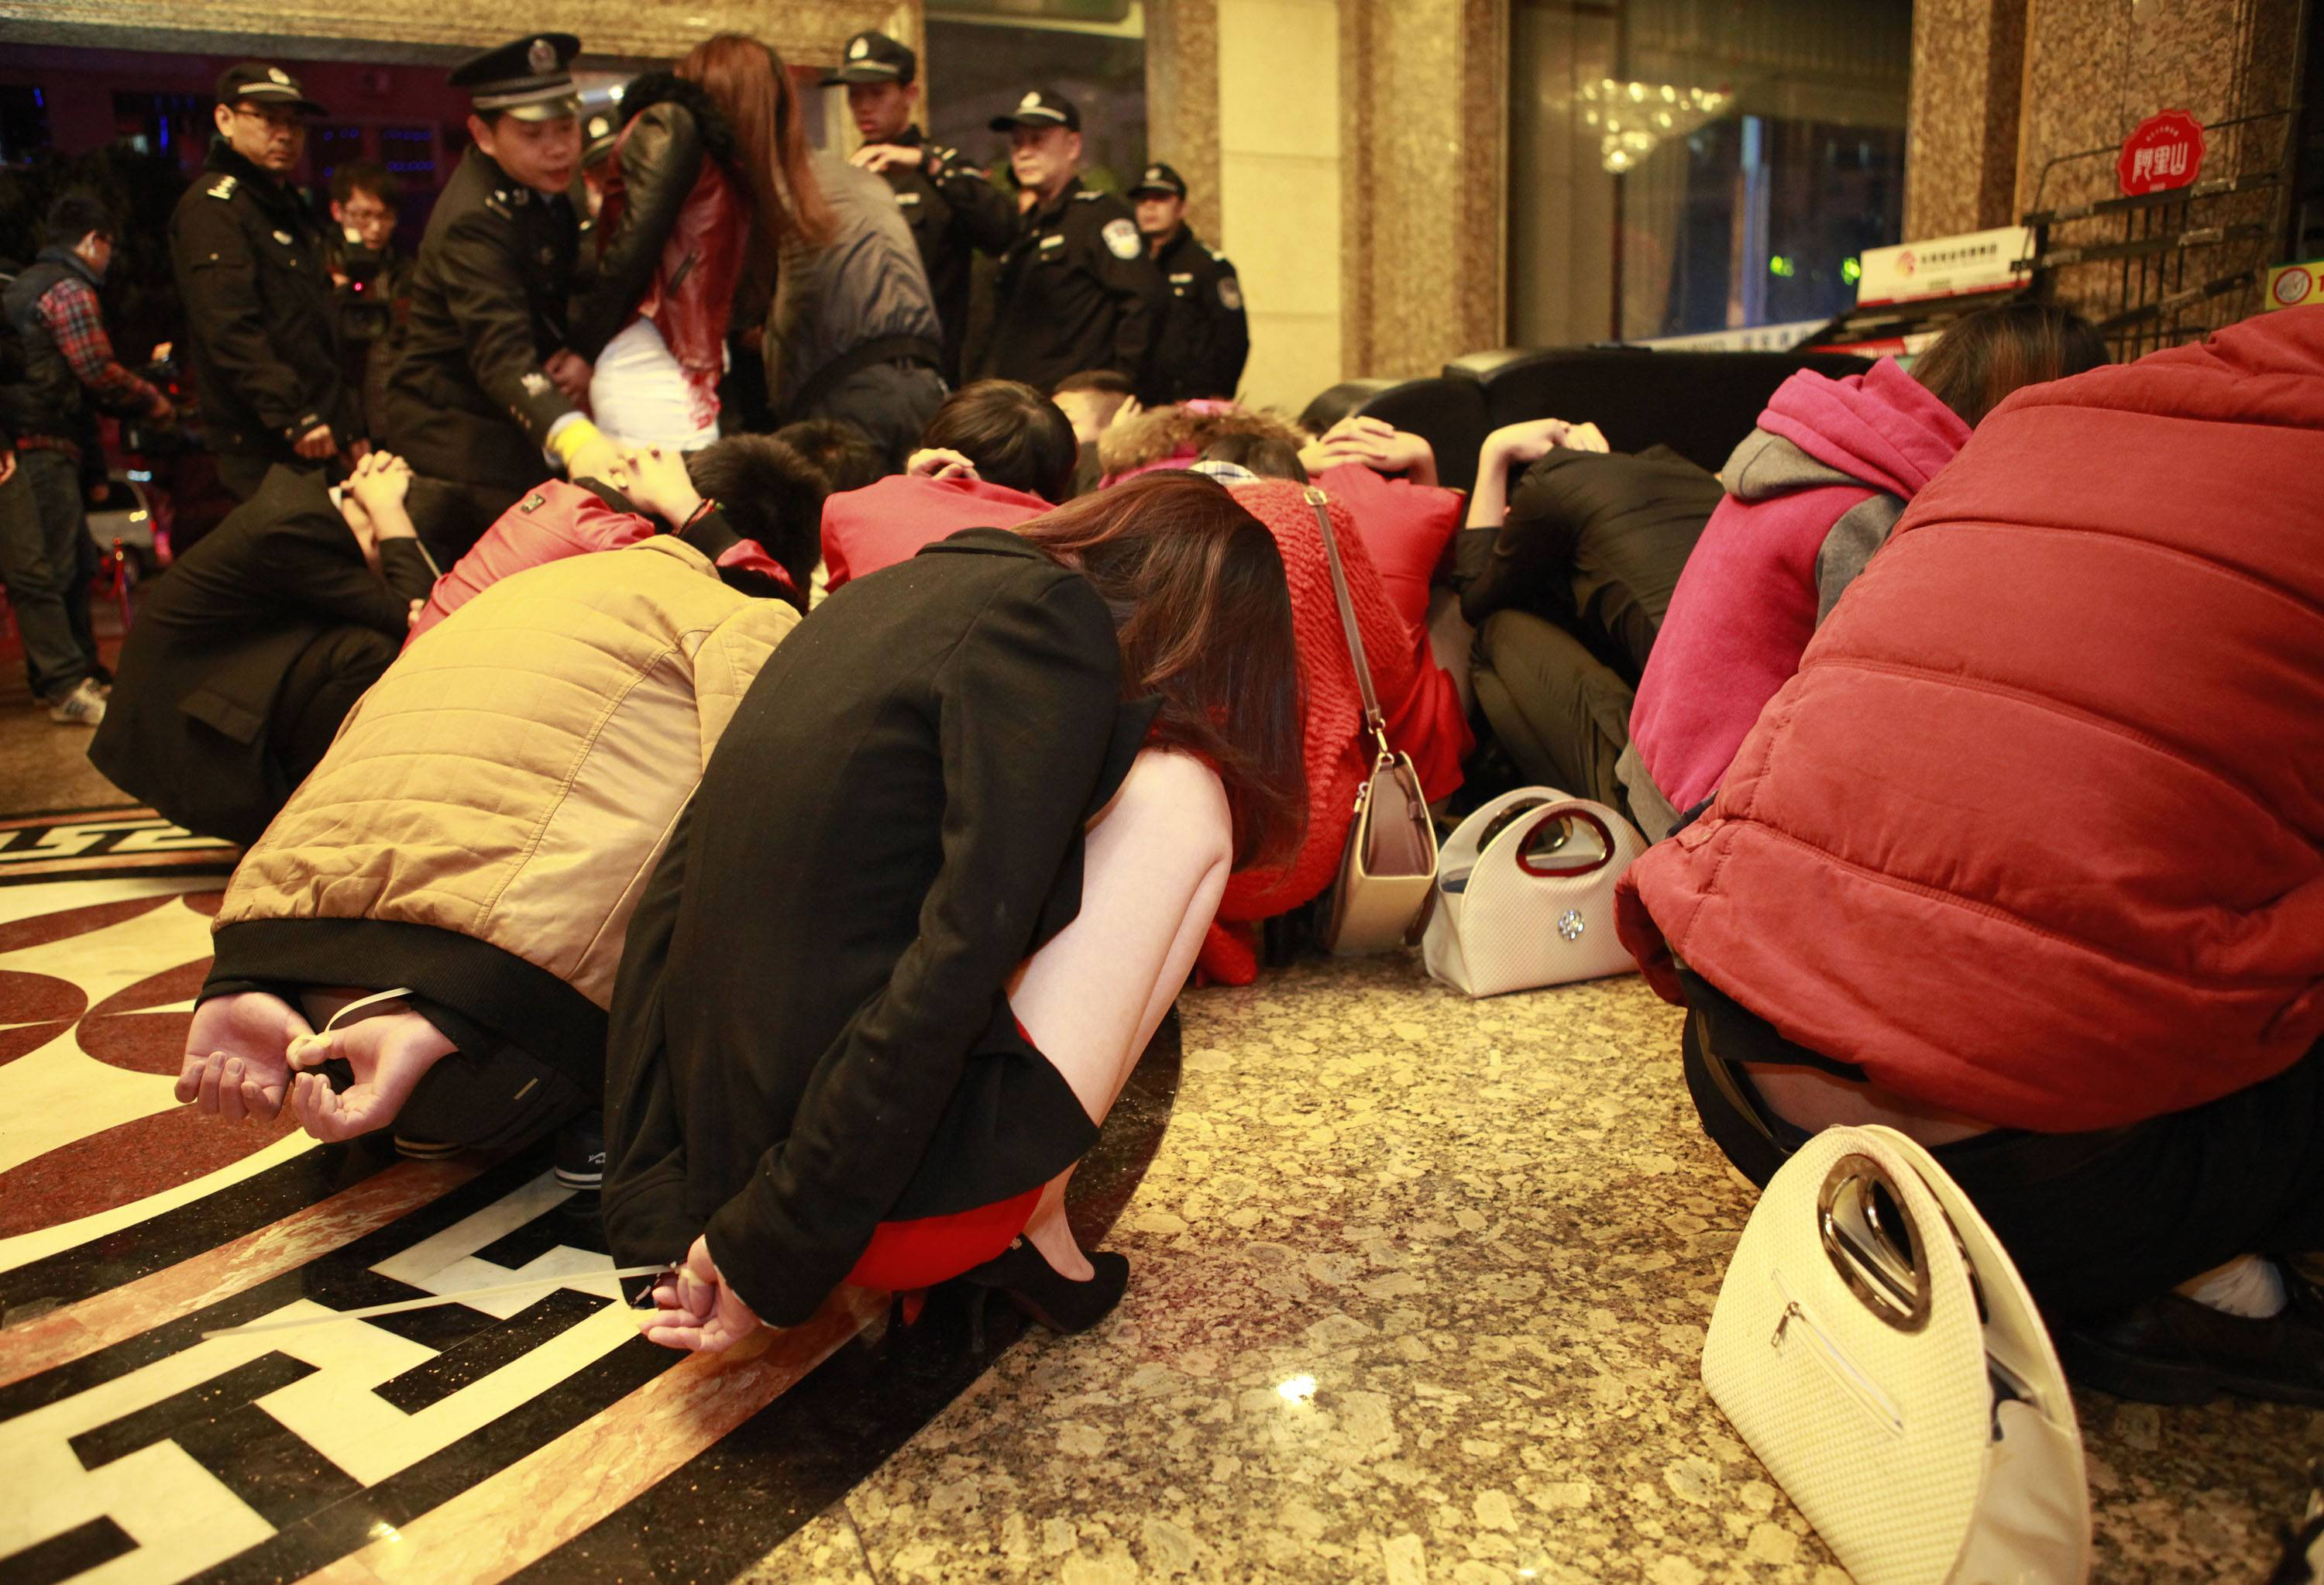 Detained suspects are gathered in a lobby during an anti-prostitution raid at a hotel in Dongguan in south China's Guangdong province. China's booming sex industry may finally be entering a winter after decades of robust growth, as Beijing wages a harsher-than-usual clampdown on vice.